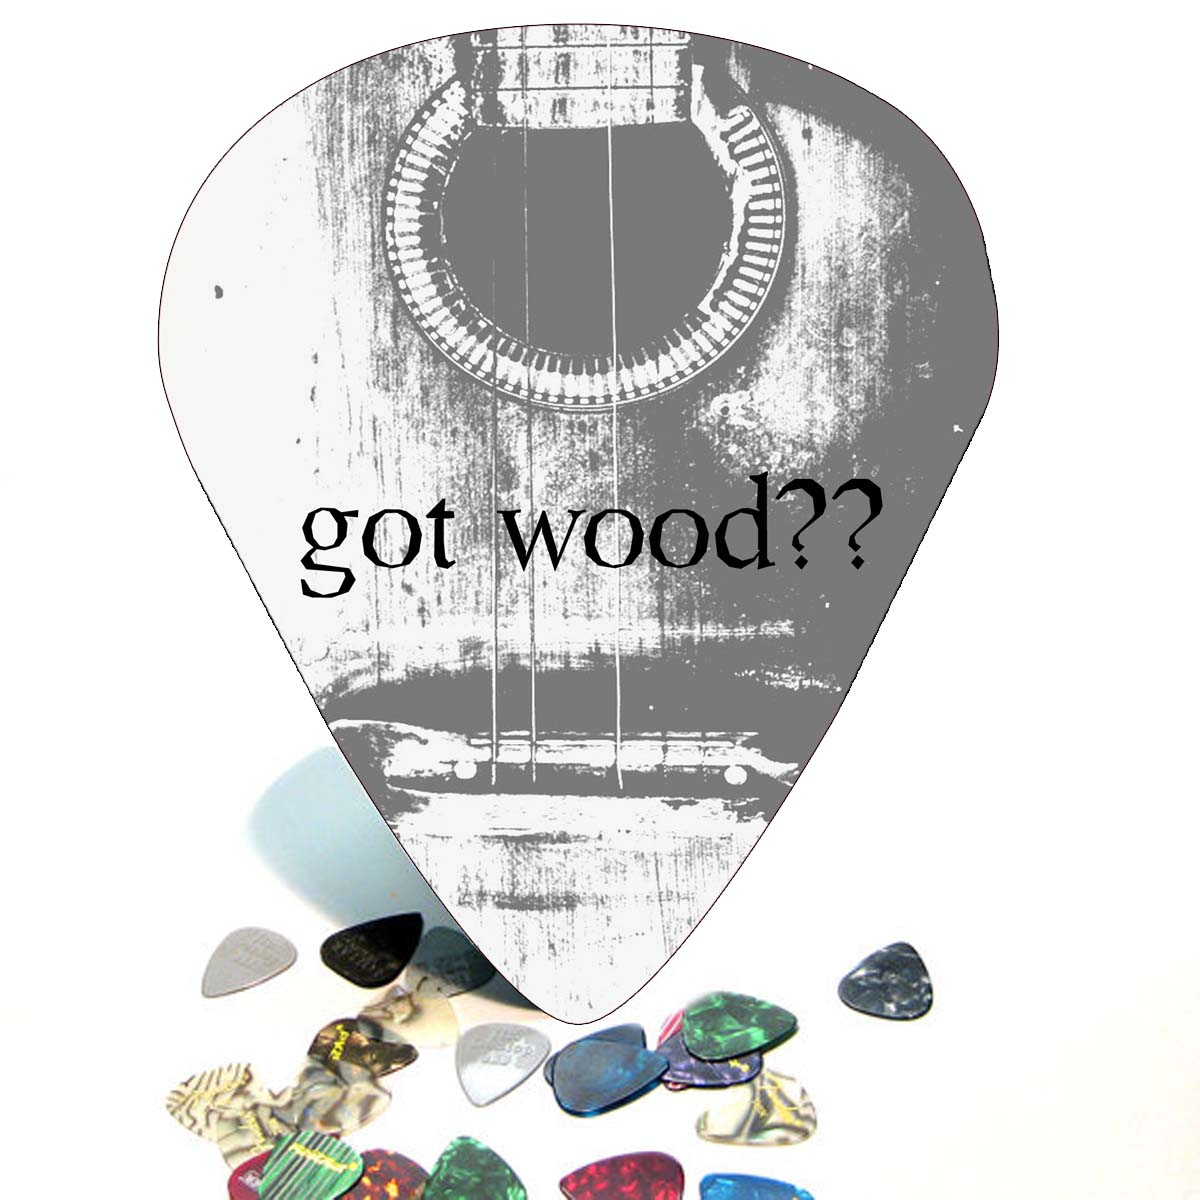 GOT WOOD Giant Guitar Pick Wall Art - 1006